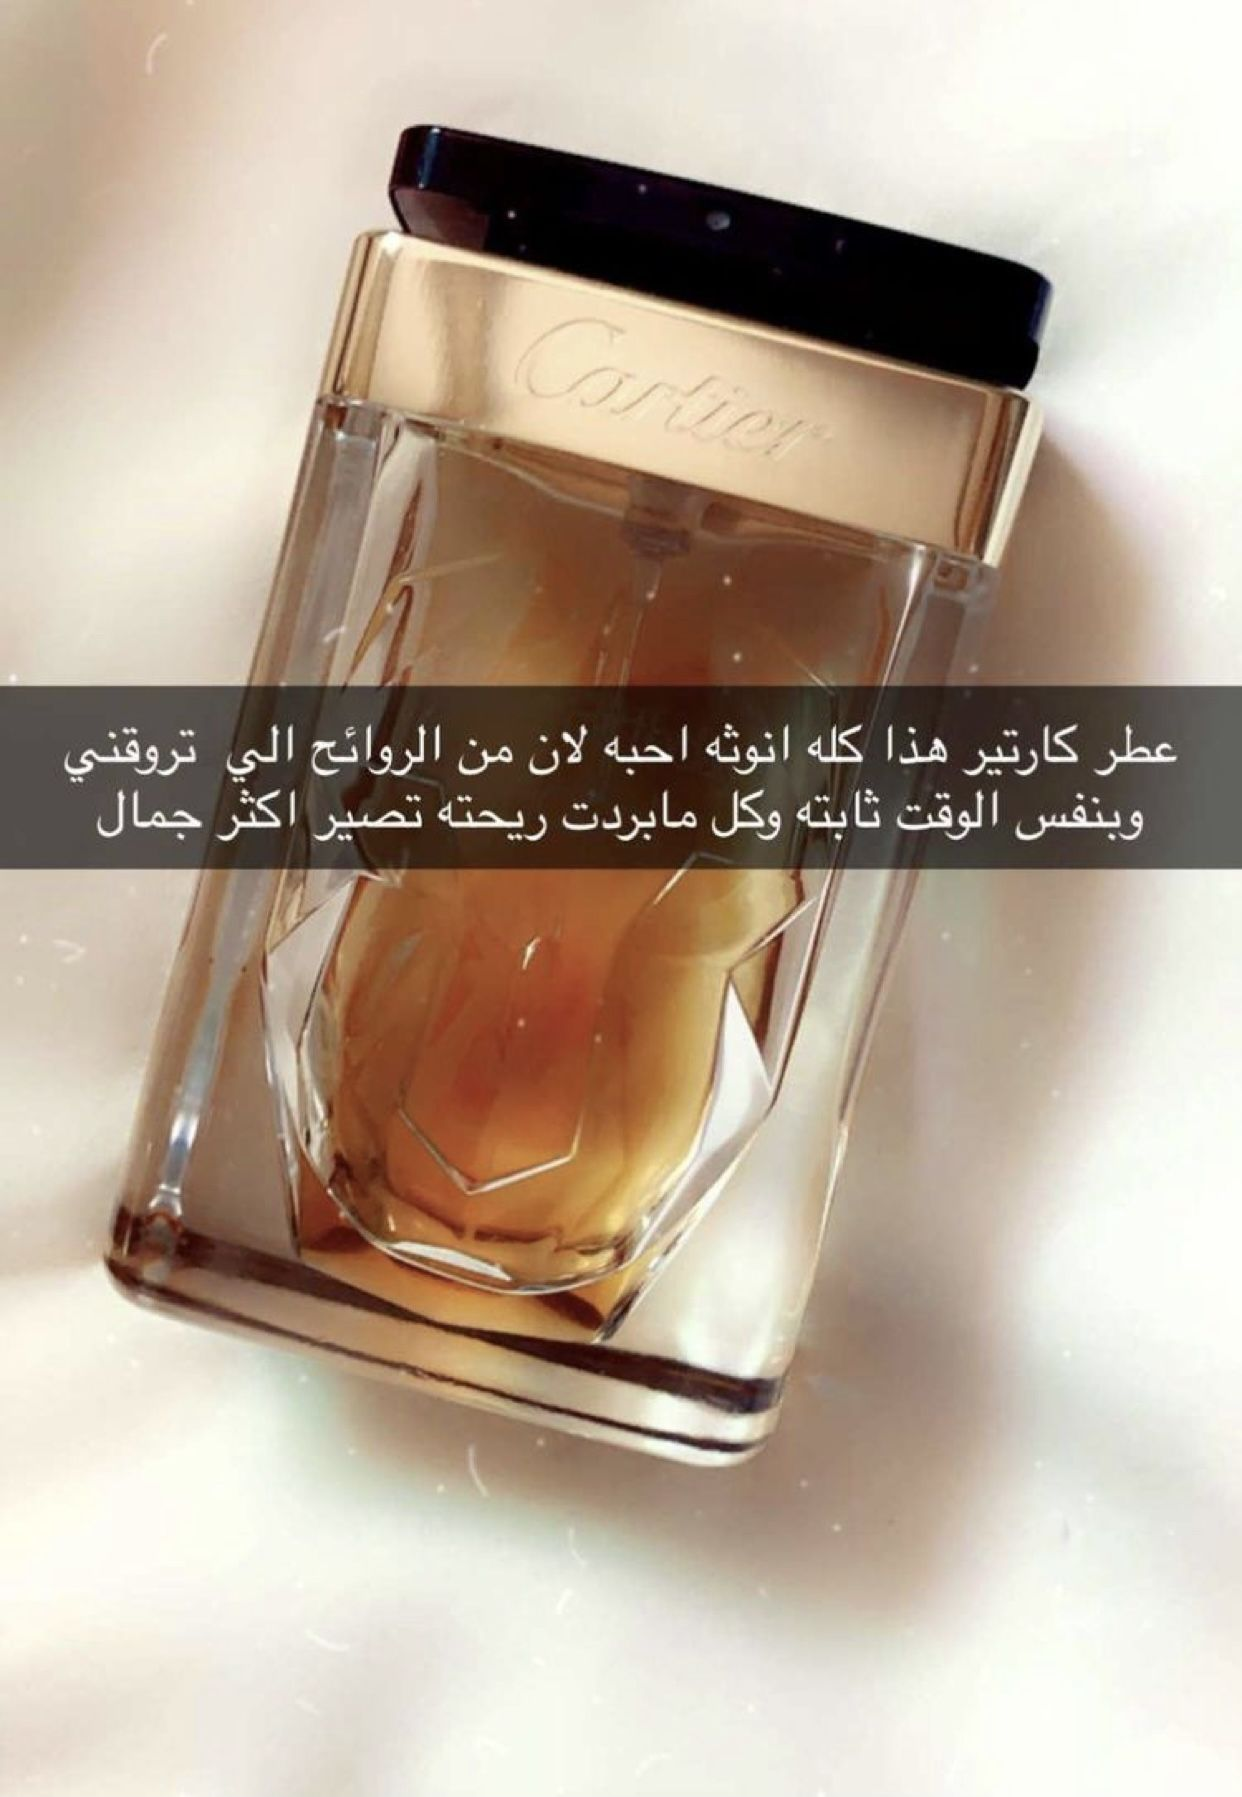 Pin By Samar Anan On عطور فرنسية In 2020 Beauty Recipes Hair Perfume Scents Hair Care Oils